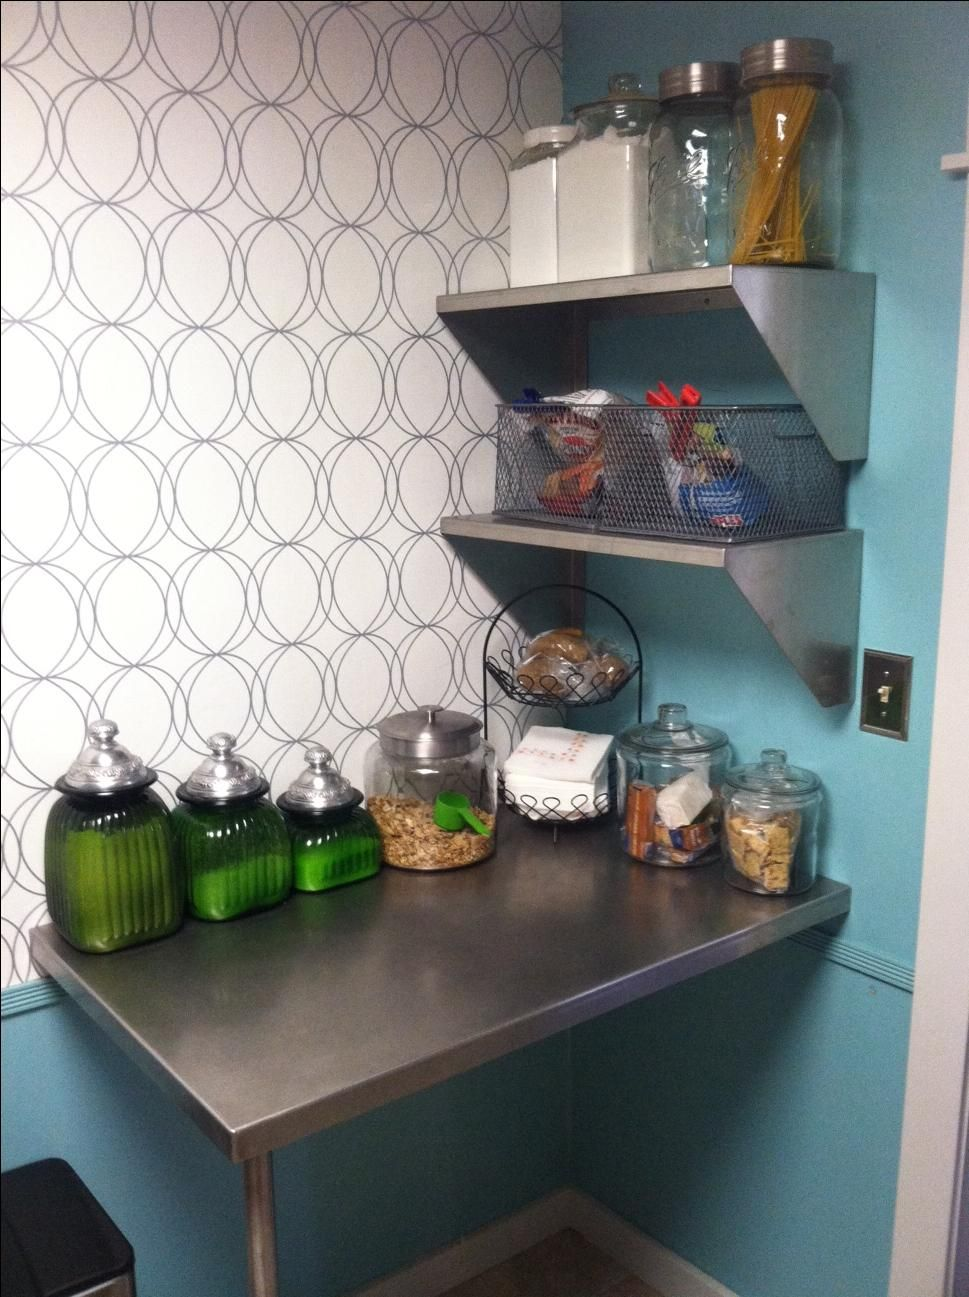 hand crafted stainless steel countertops and shelves by. Black Bedroom Furniture Sets. Home Design Ideas